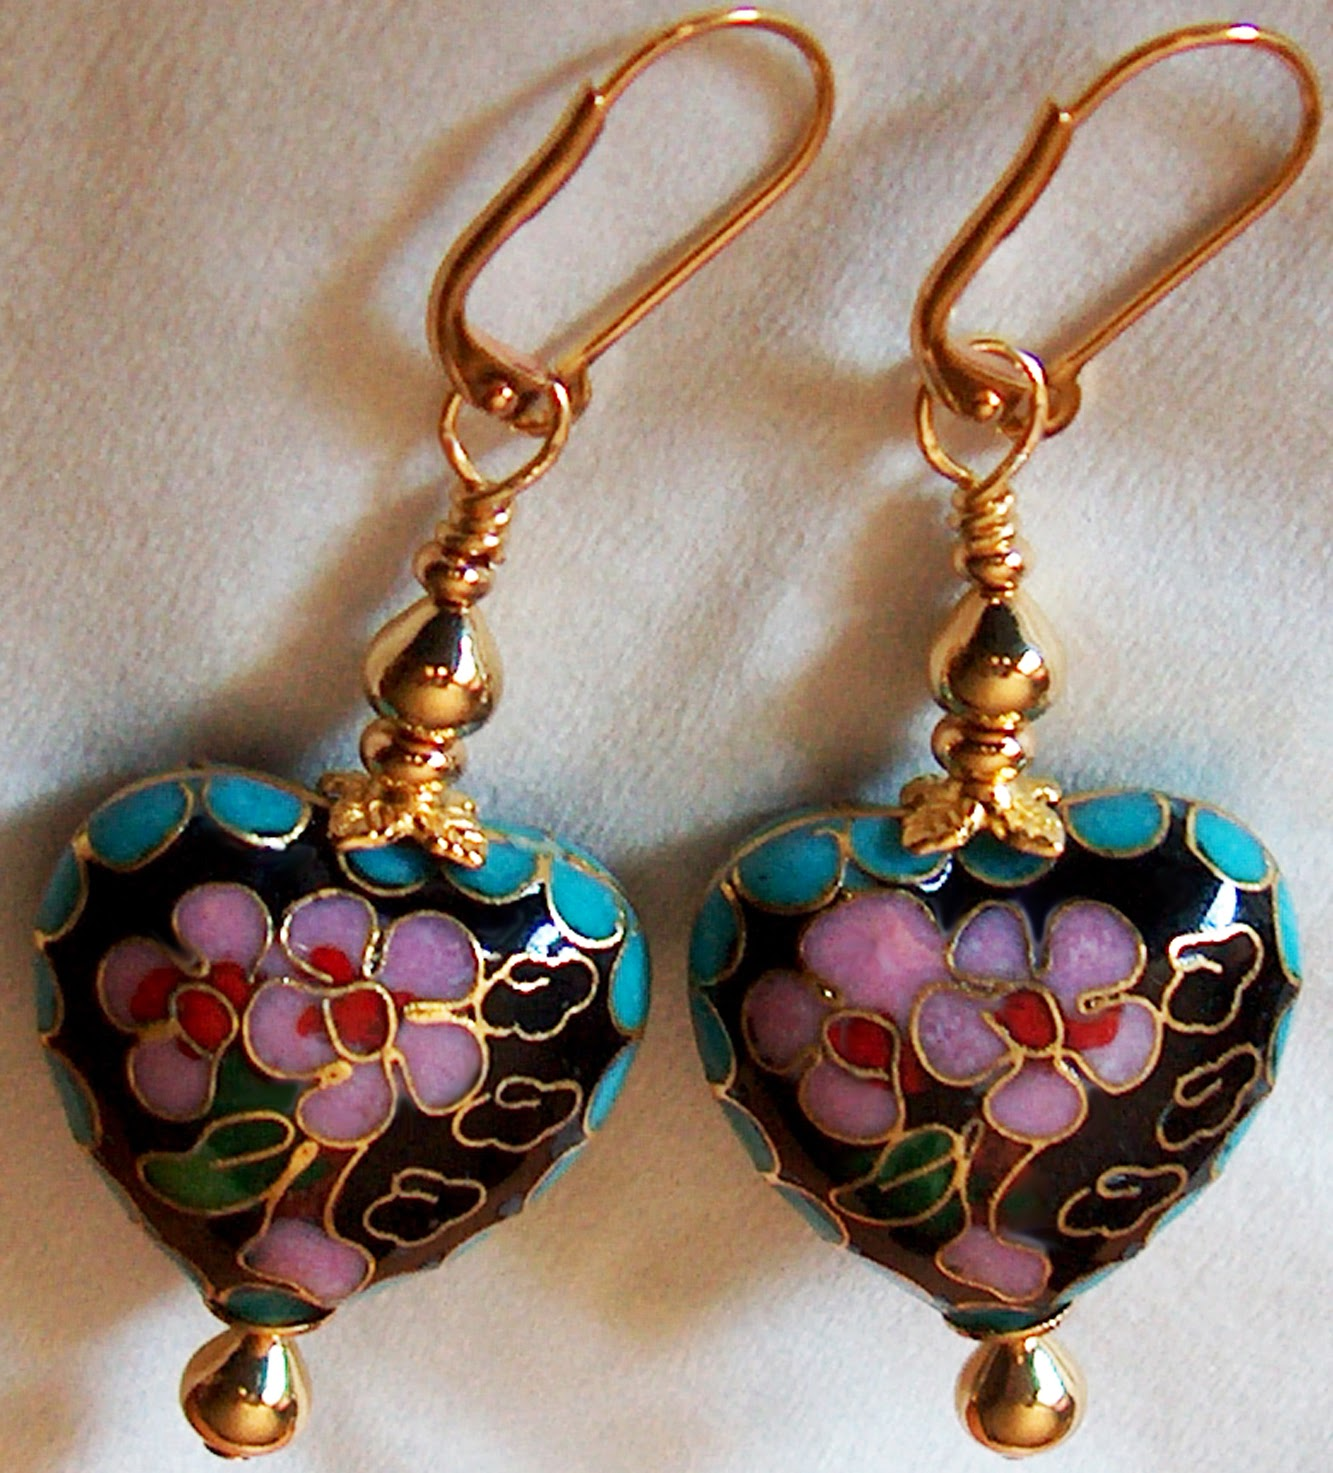 Antique Cloisonne Earrings Kirsten USA